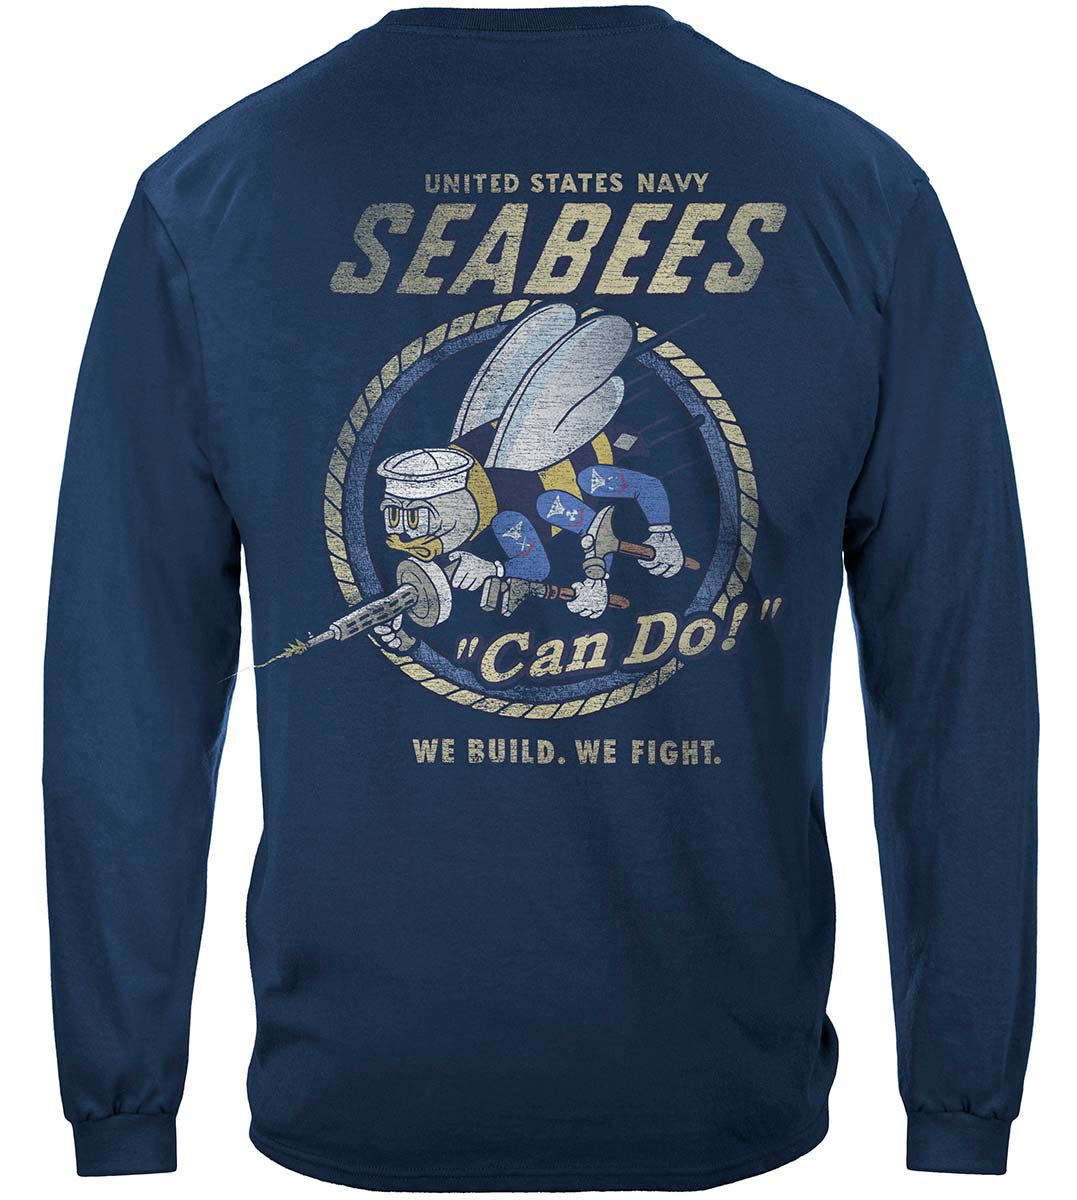 US NAVY Vintage Sea Bees United States Navy USN Premium Long Sleeves